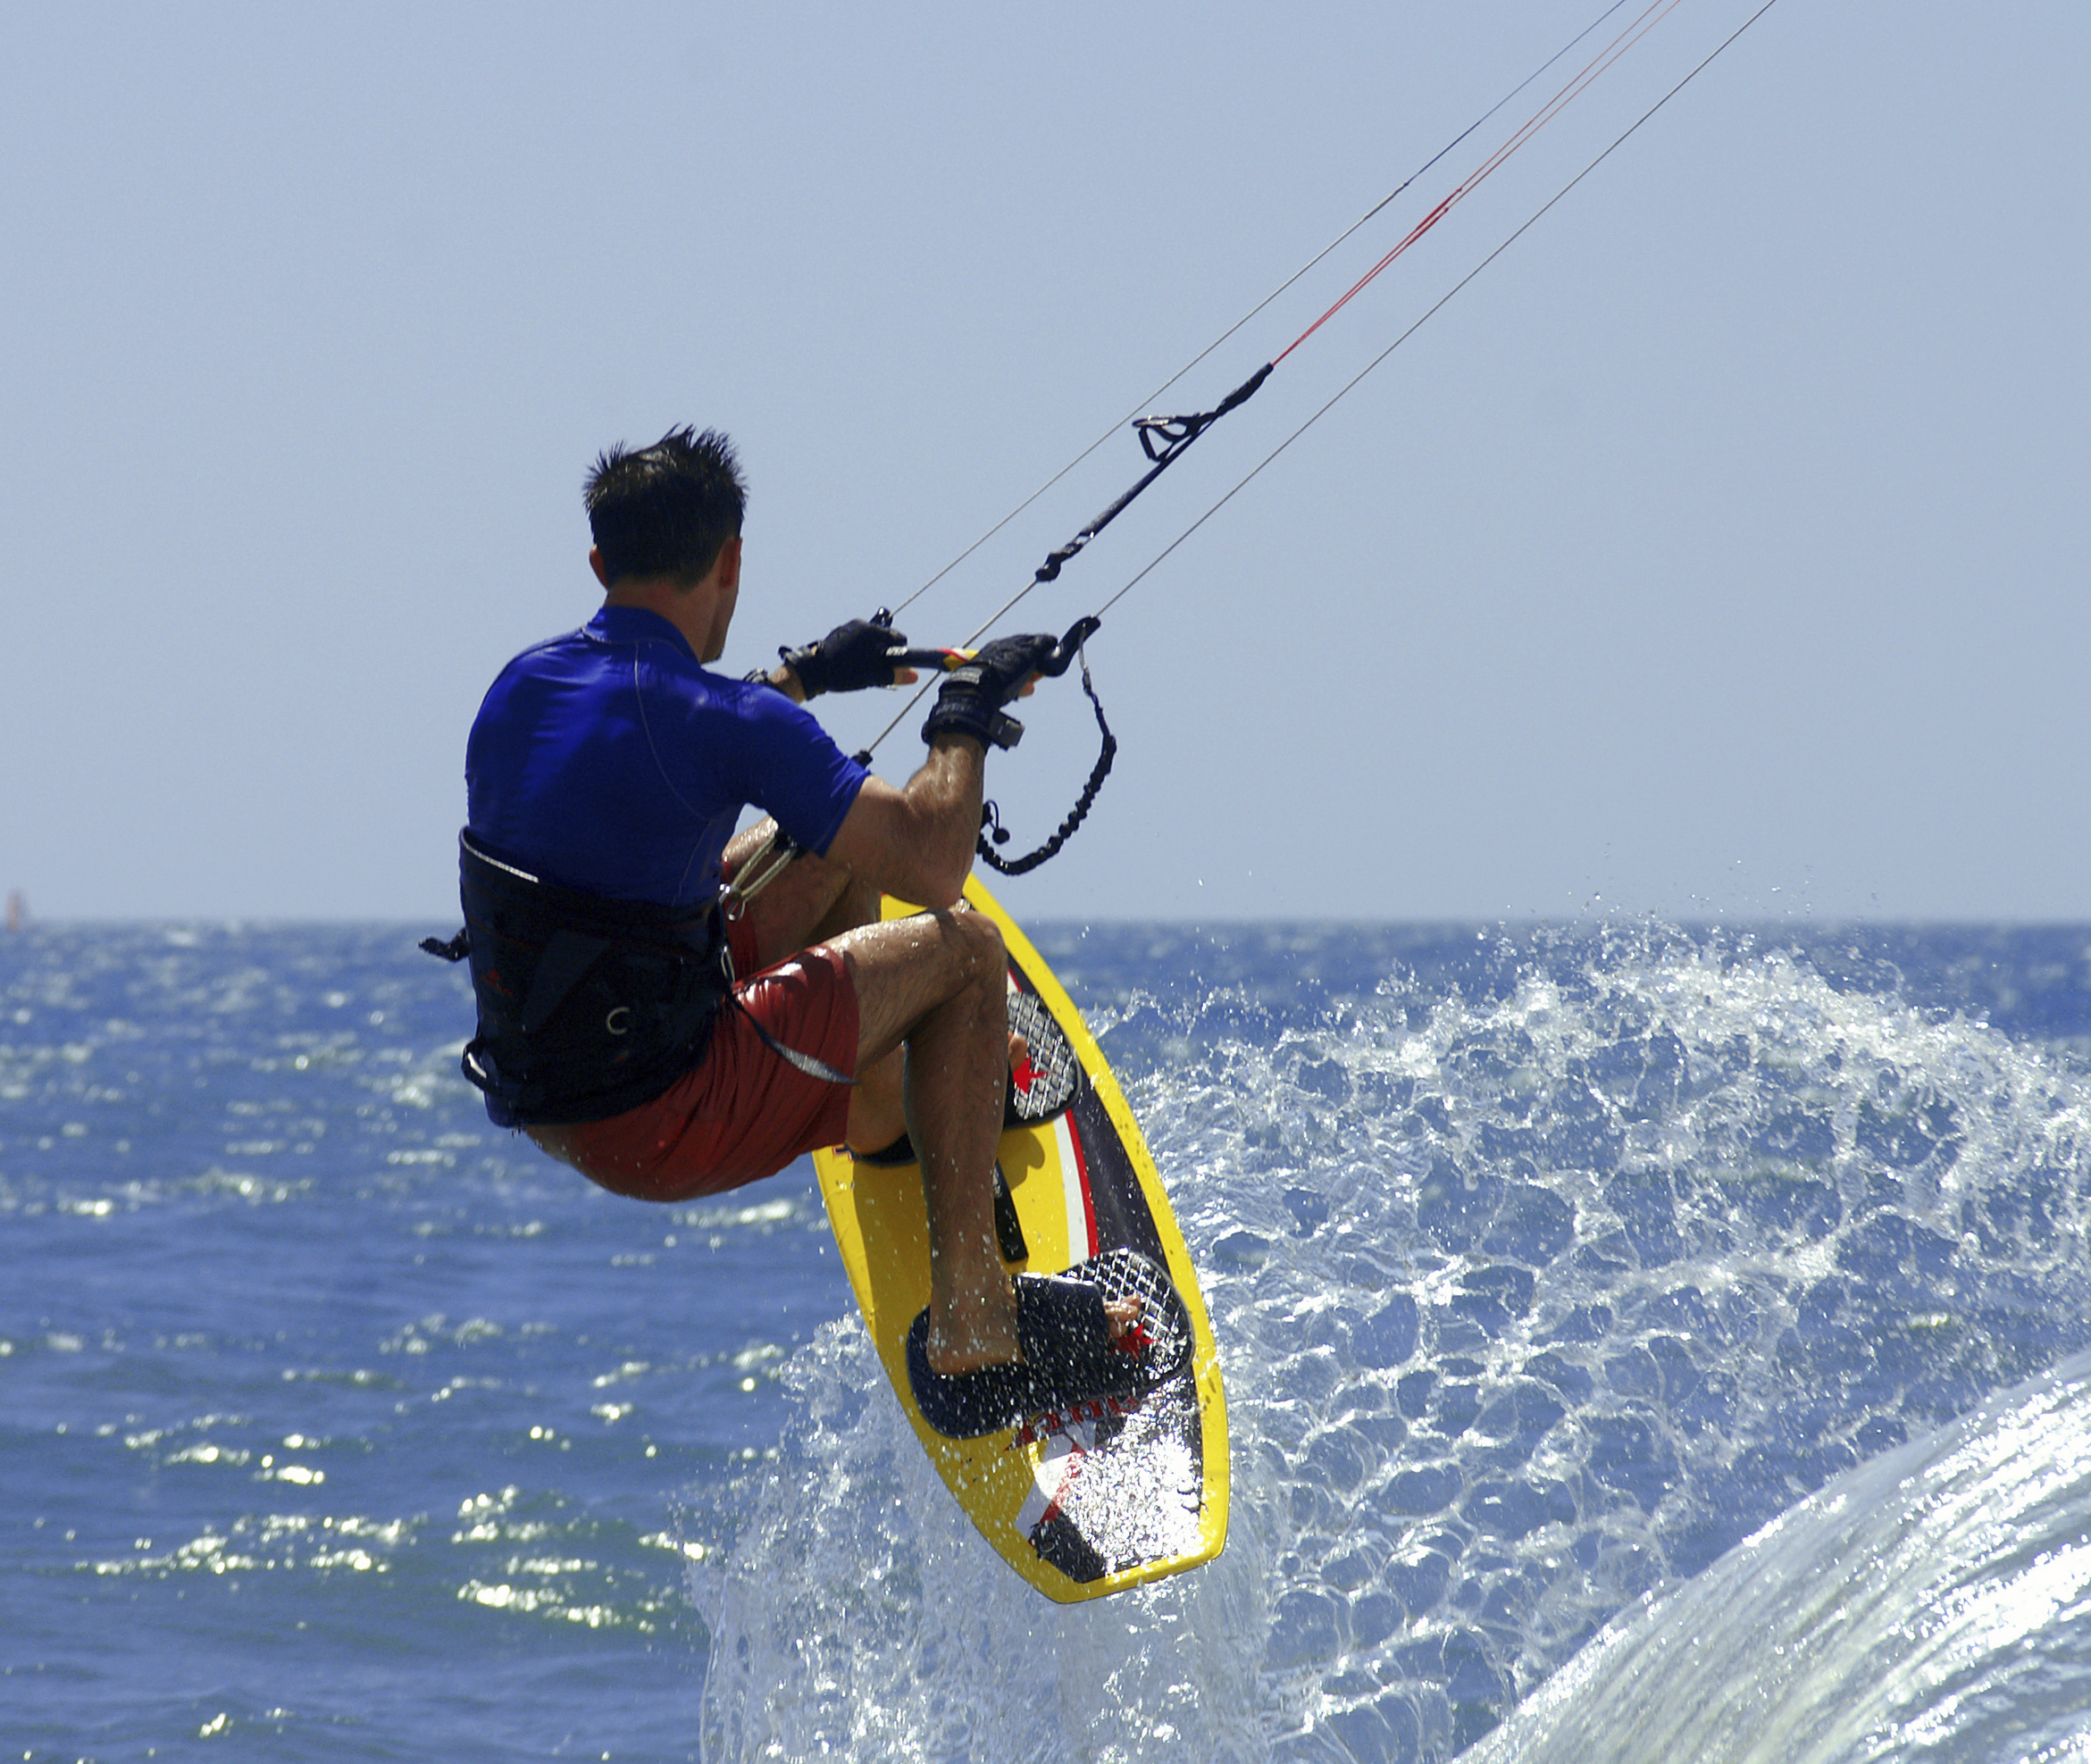 Extreme Sports: Kevin Hall Physiotherapy Brighton & Hove